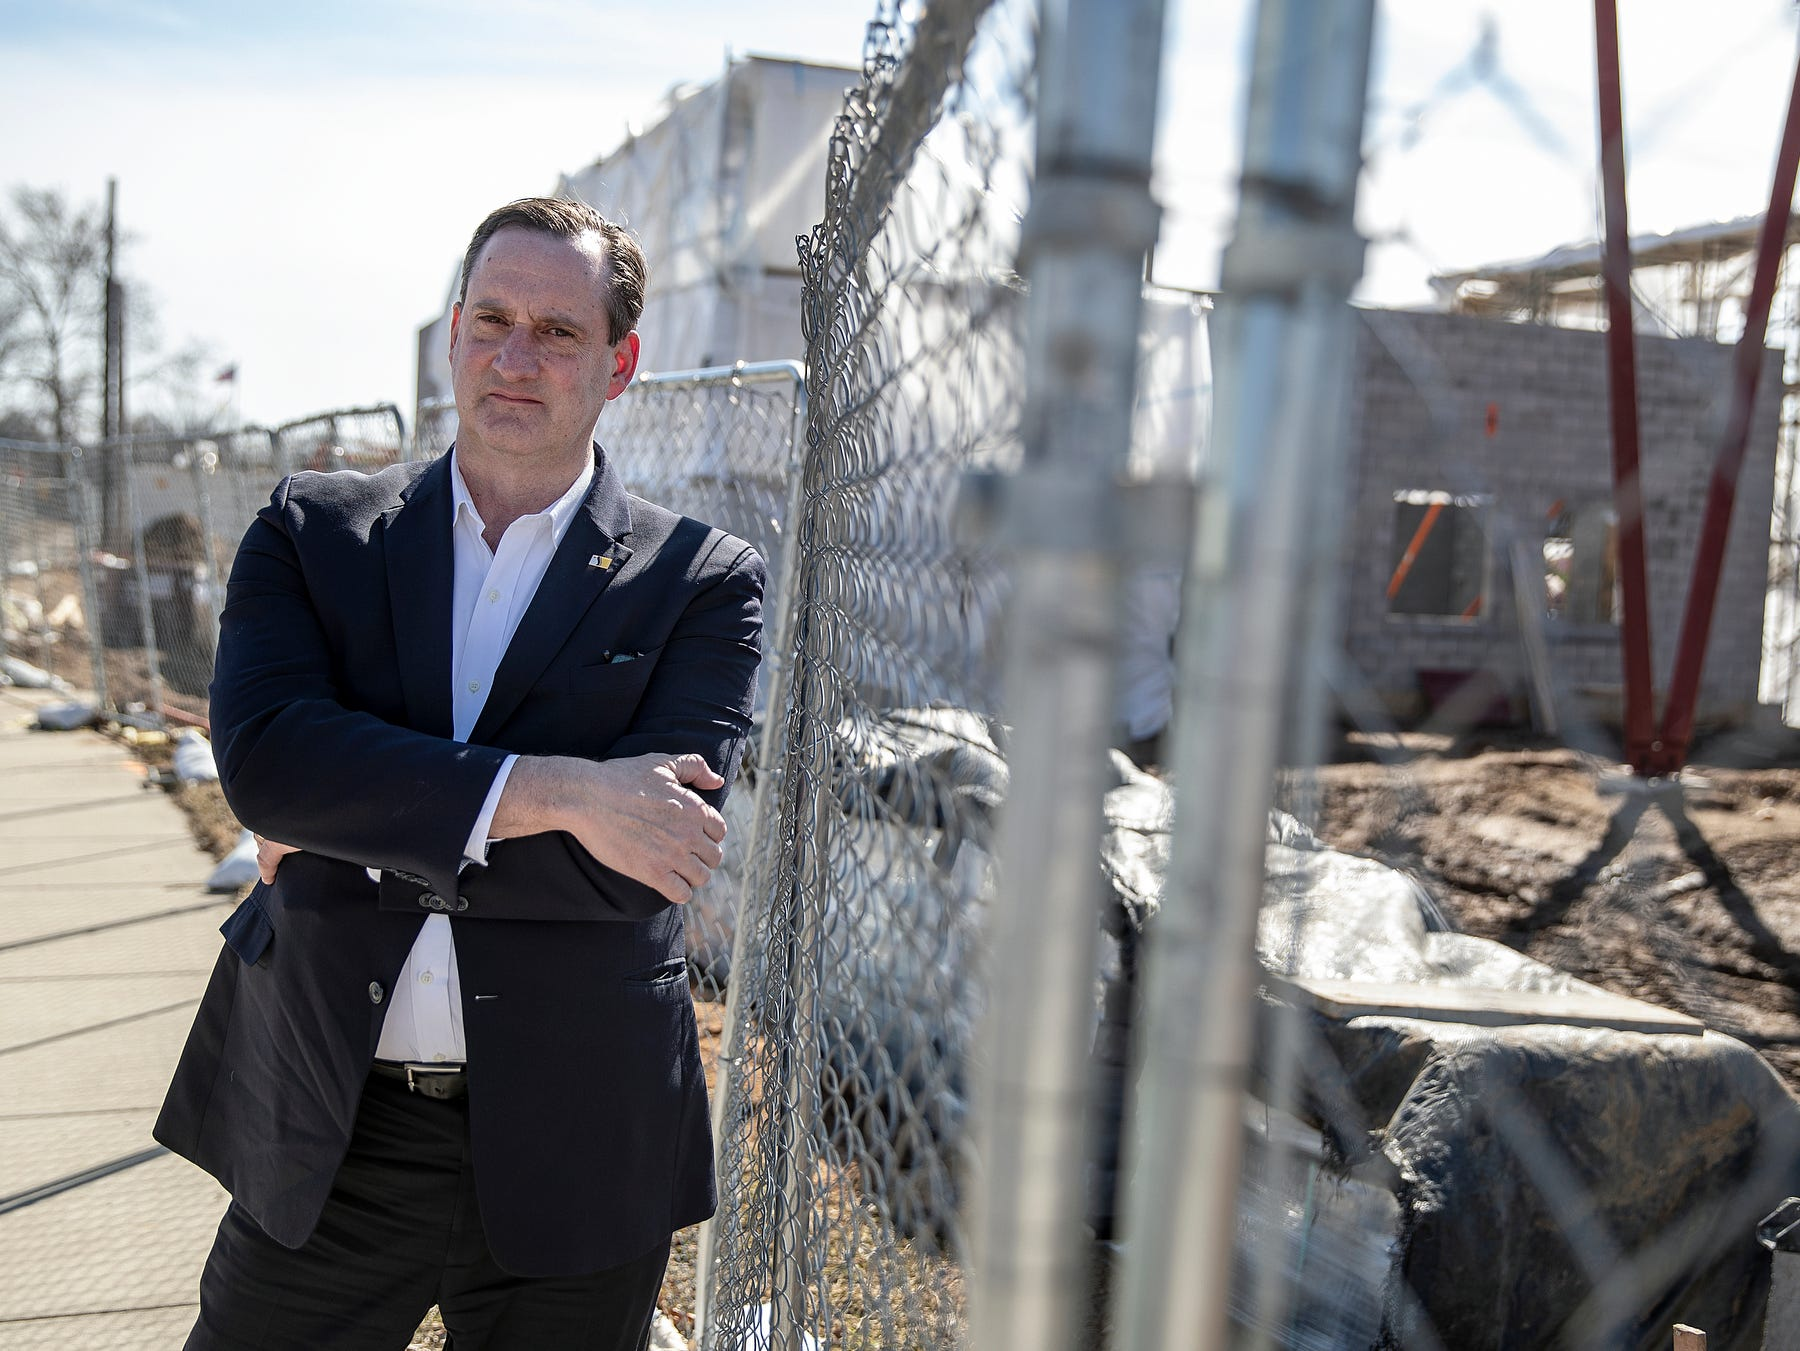 "Tim Scott, South Bend City Council President and a member of the Mayor's Task Force for Vacant and Abandoned Houses, poses for a portrait near construction at Howard Park in downtown South Bend, Ind. on Tuesday, March 12, 2019. Scott was involved in the city's demolition of 1,000 houses in 1,000 days, a project that some say encouraged gentrification and disadvantaged residents. Scott says that many houses had become a safety concern and no one lost the homes in which they were living.Ê""The whole idea was trying to right size the city and try to understand really what our housing needs are and trying to eliminateÊsome of the unsafe low-quality housing that was here and kind of start anew,"" Scott said."